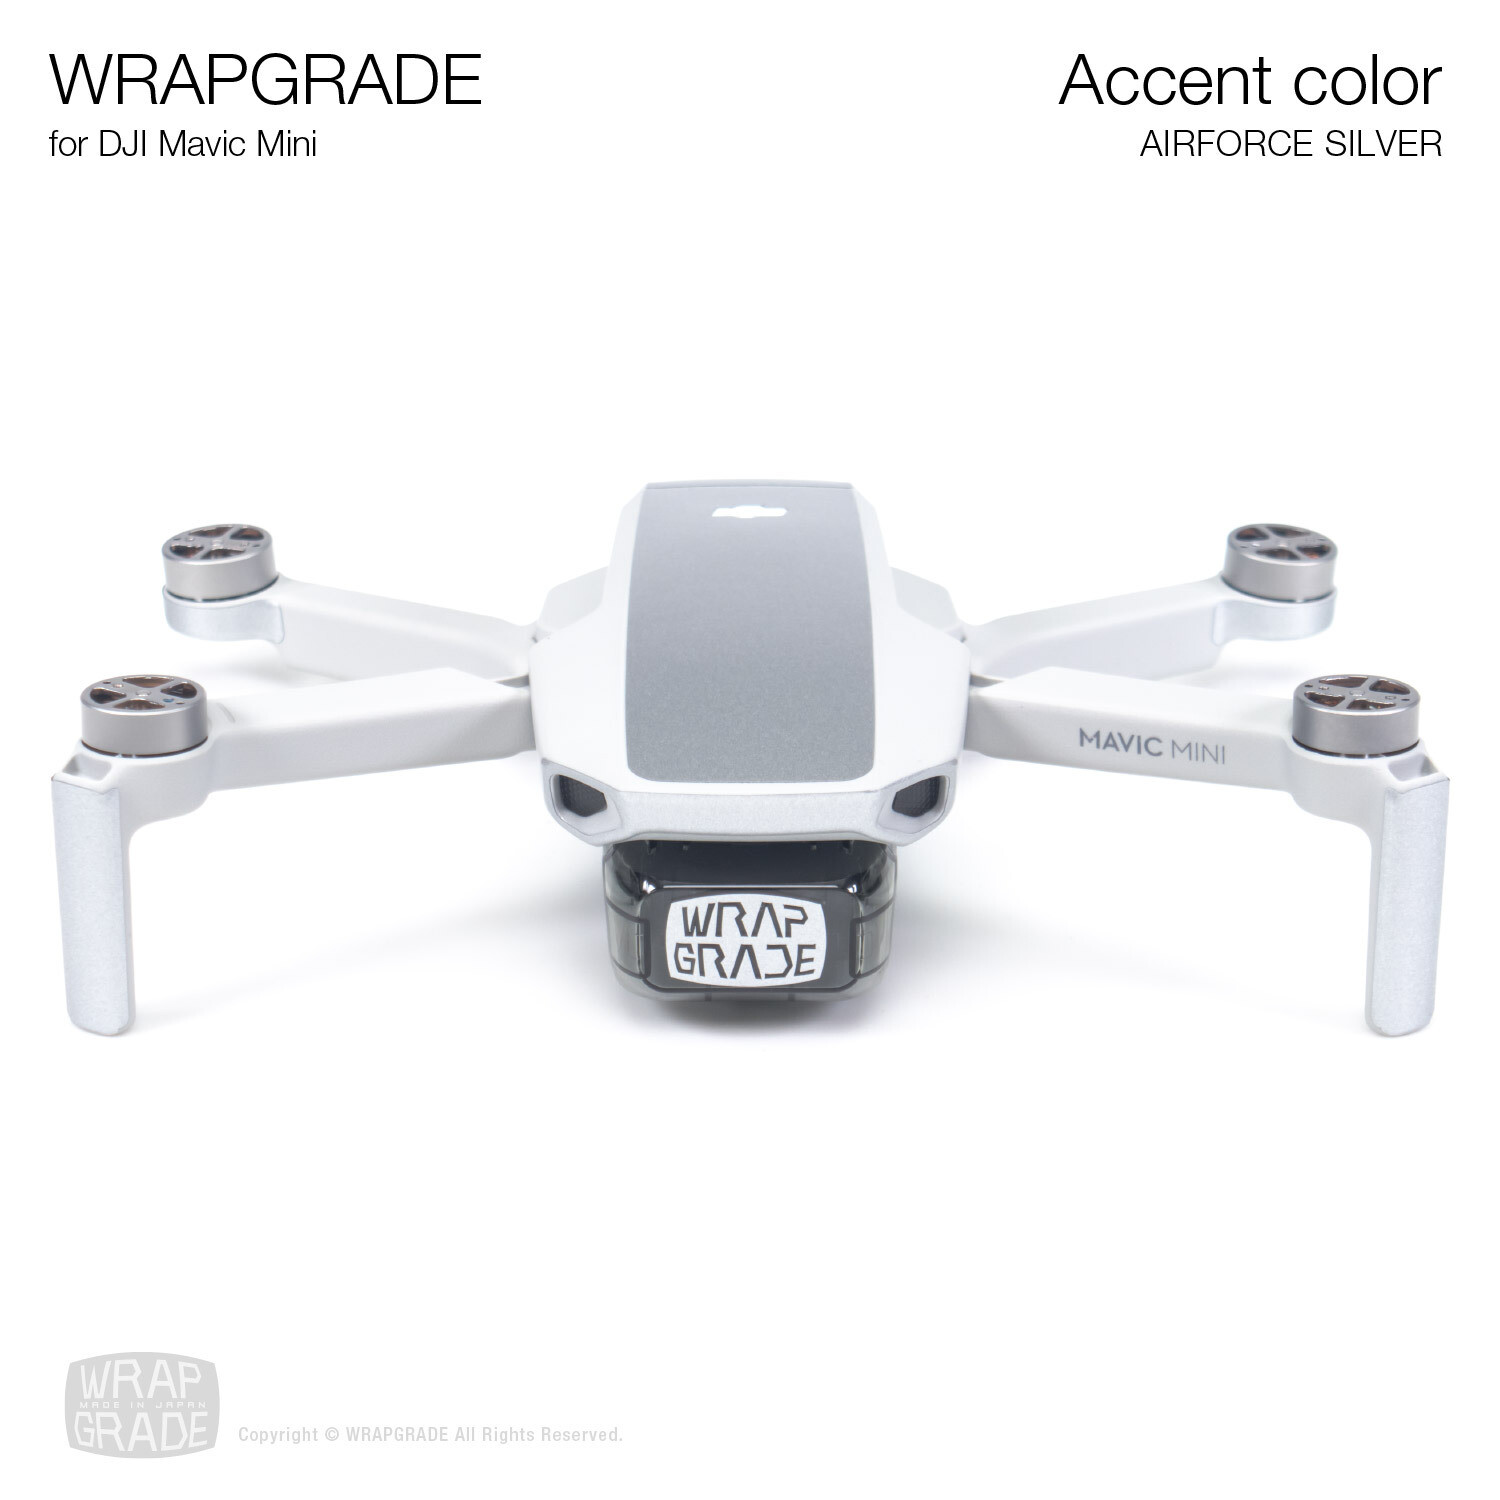 Wrapgrade Poly Skin for Mavic Mini | Accent color (AIRFORCE SILVER)